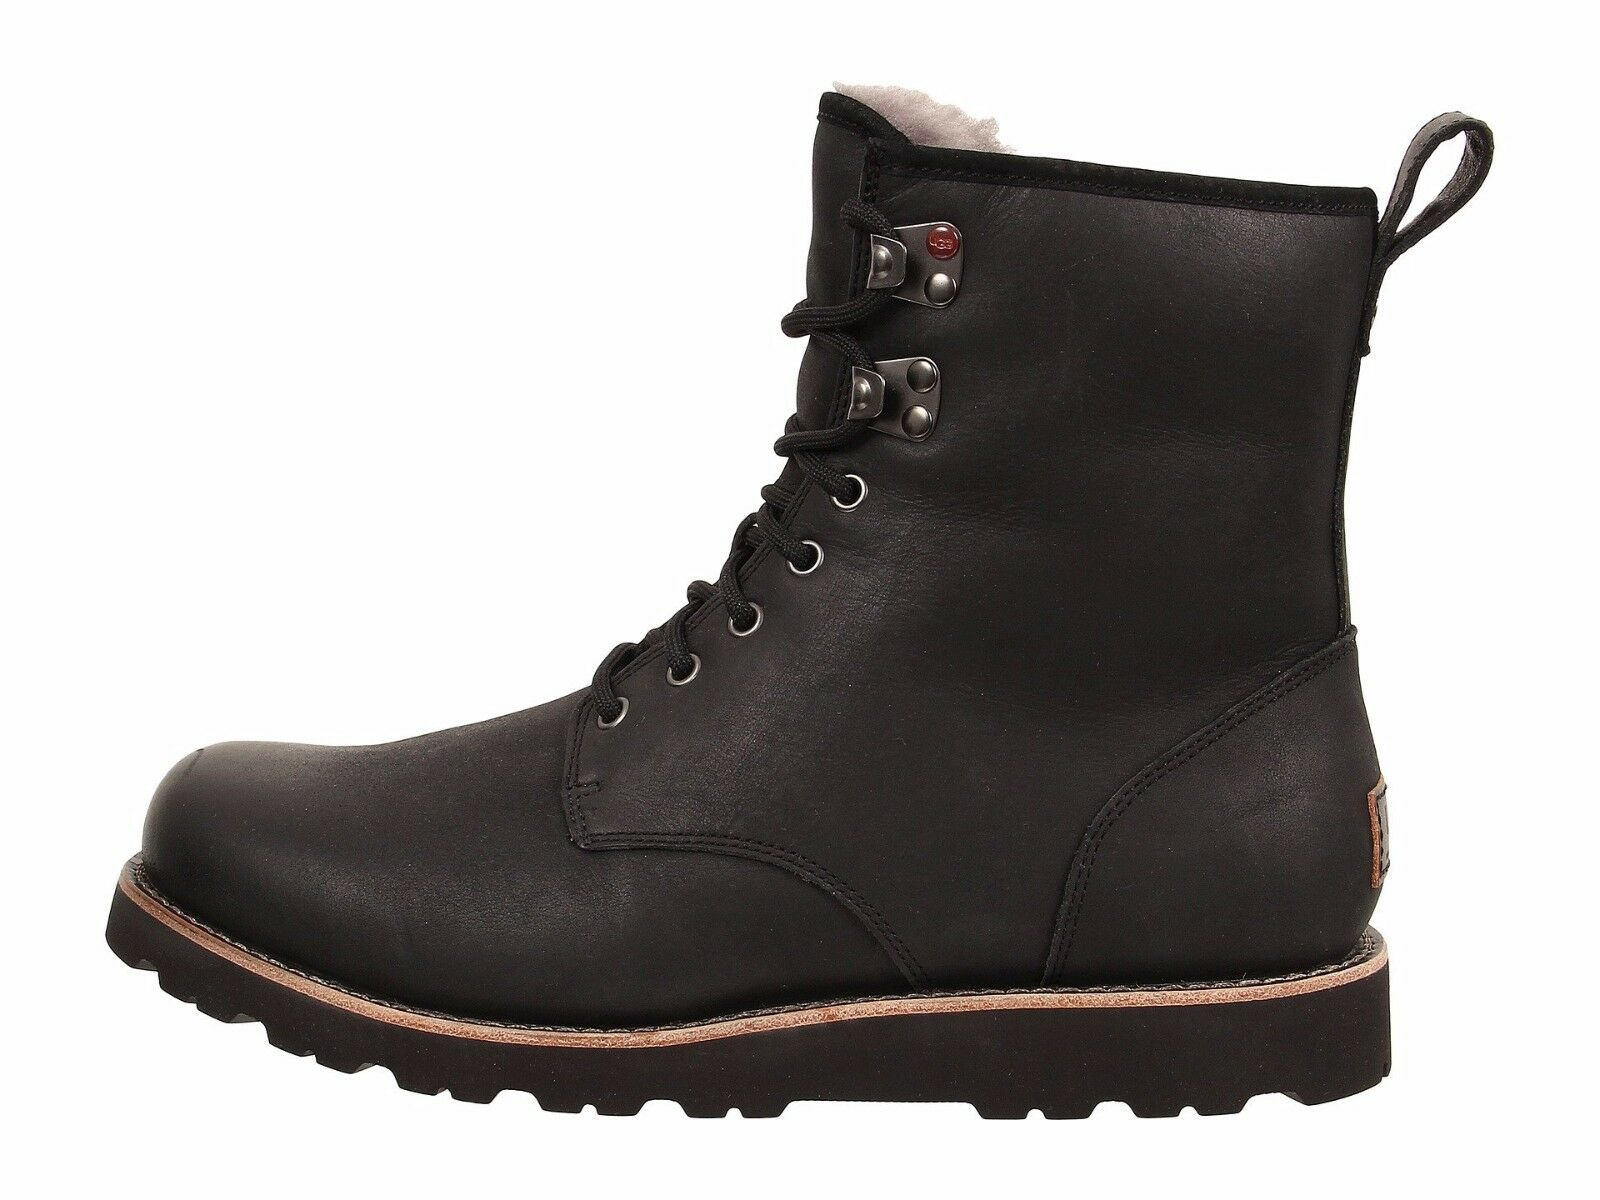 UGG Men's Hannen TL Casual Leather Winter Boots Black 1008139